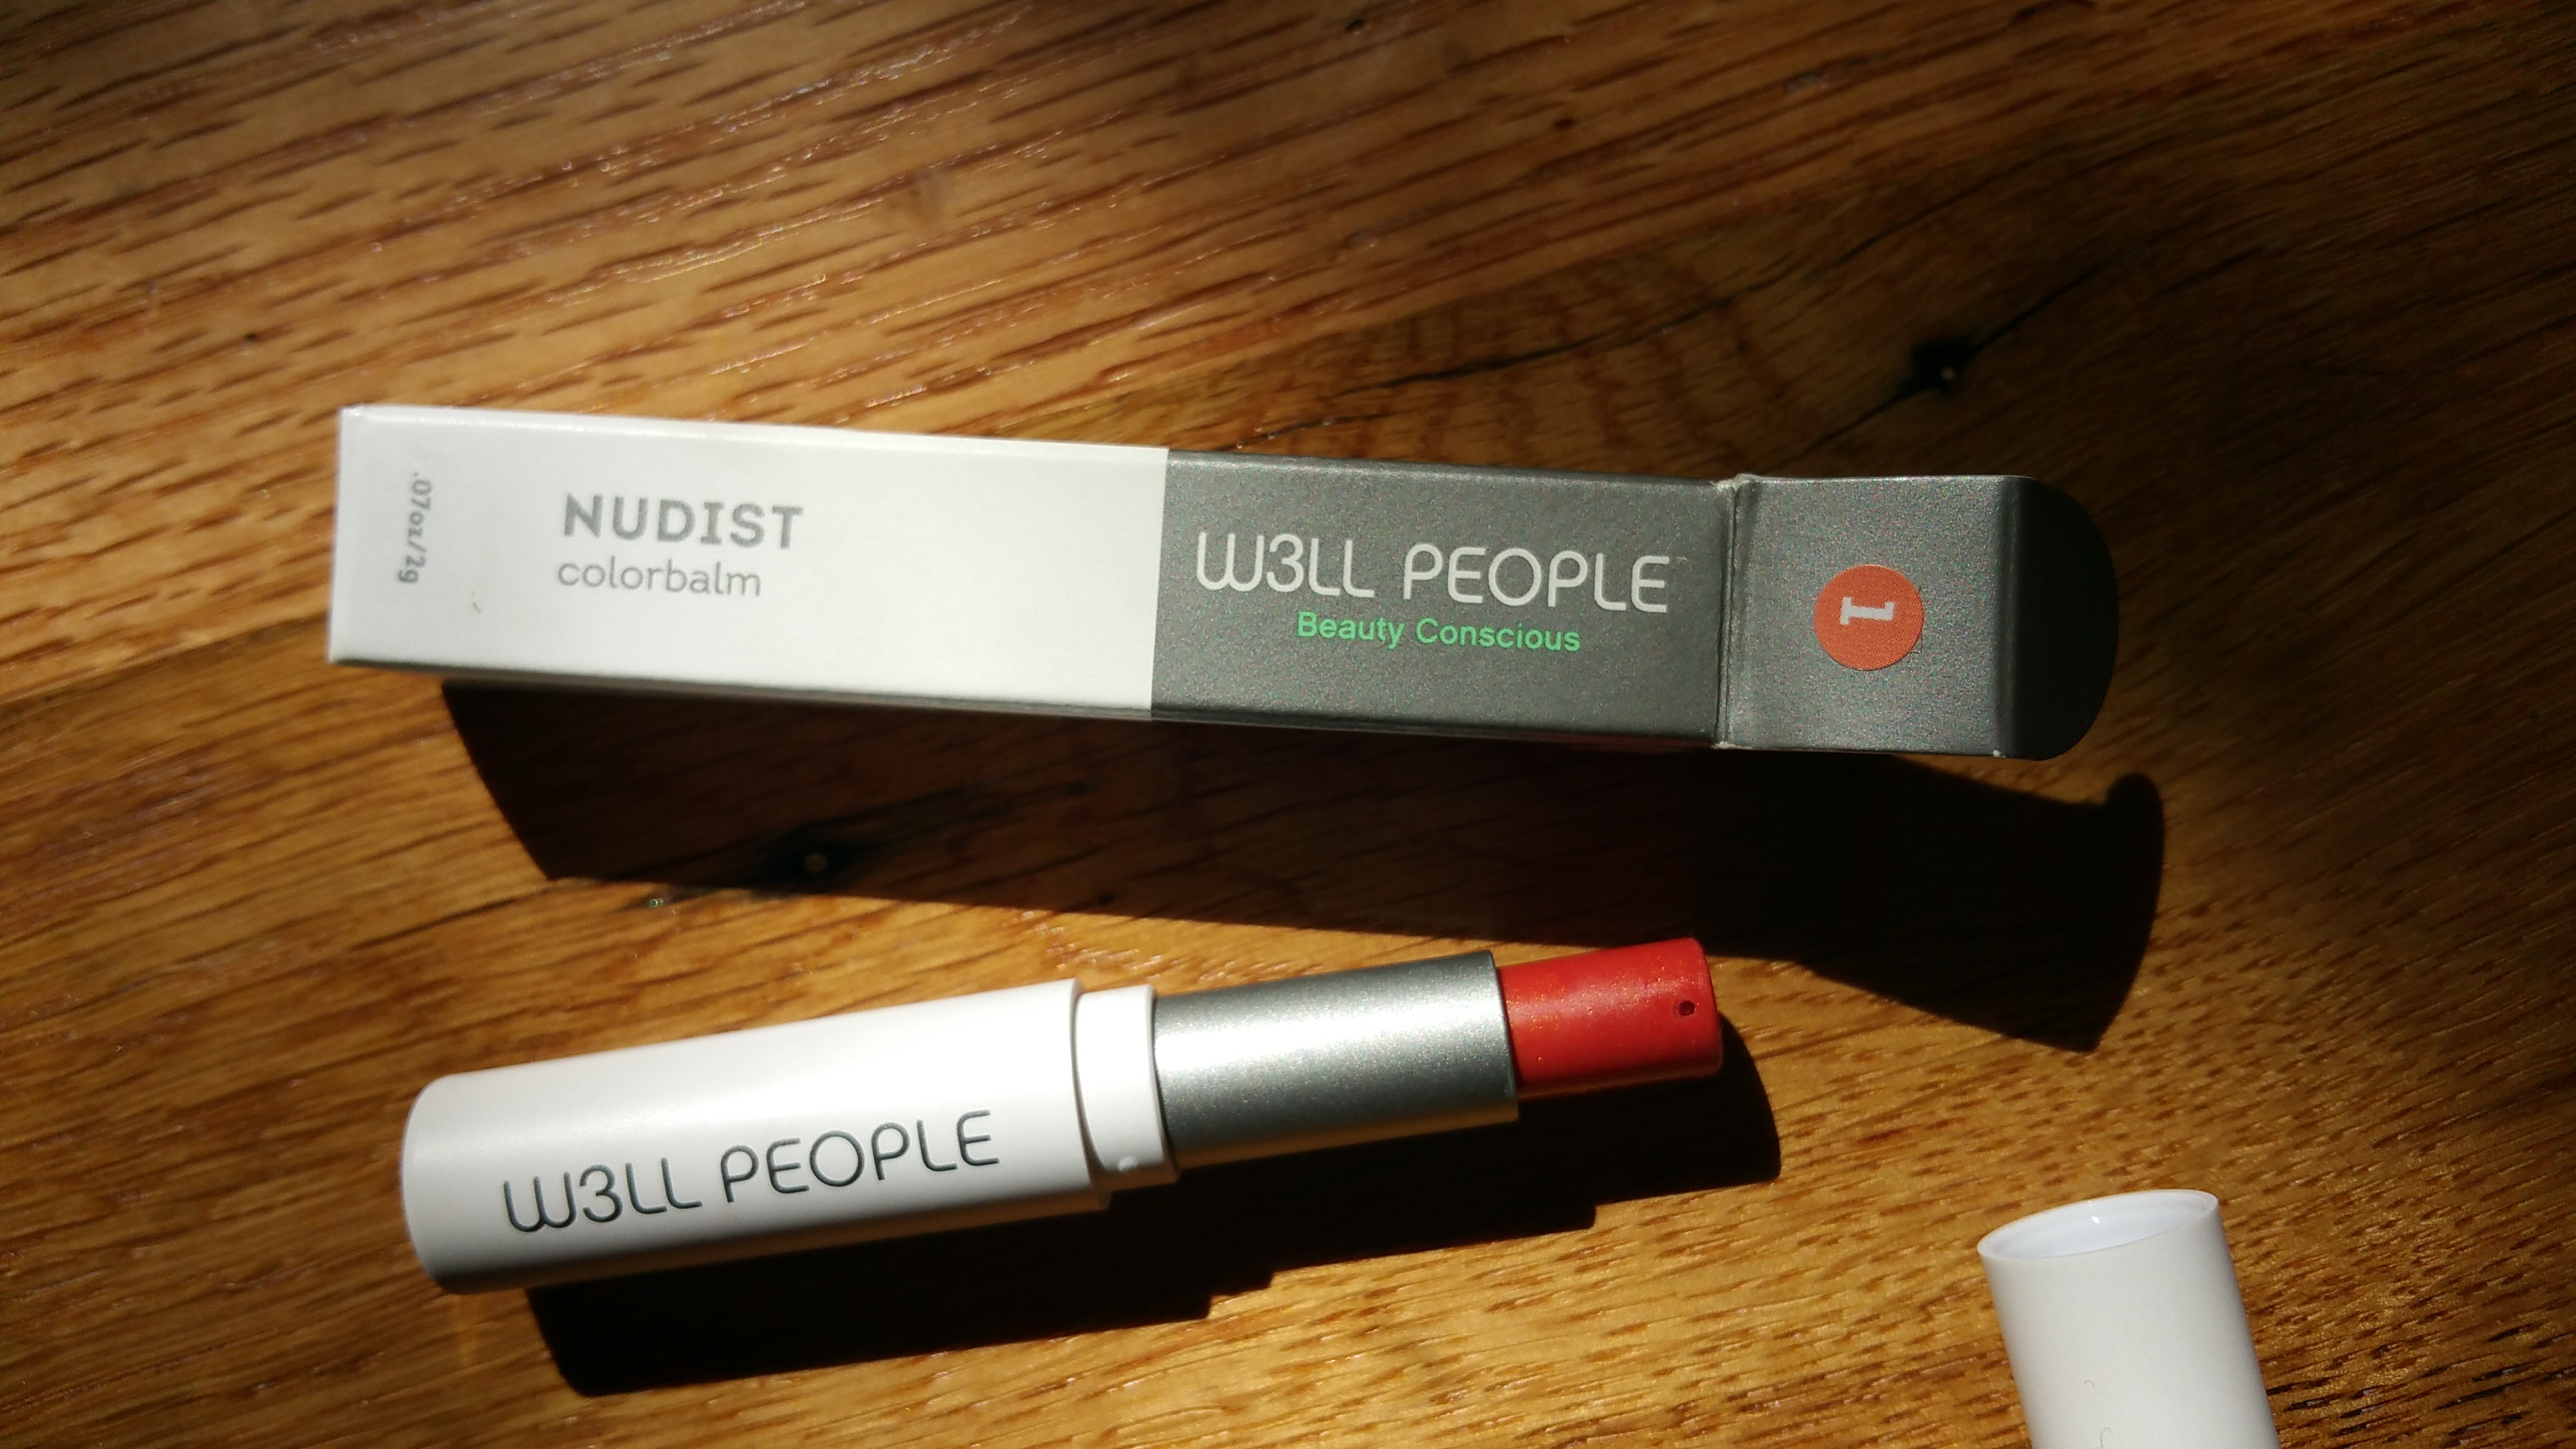 W3LL People Nudist ColorBalm No. 1 (Coral)